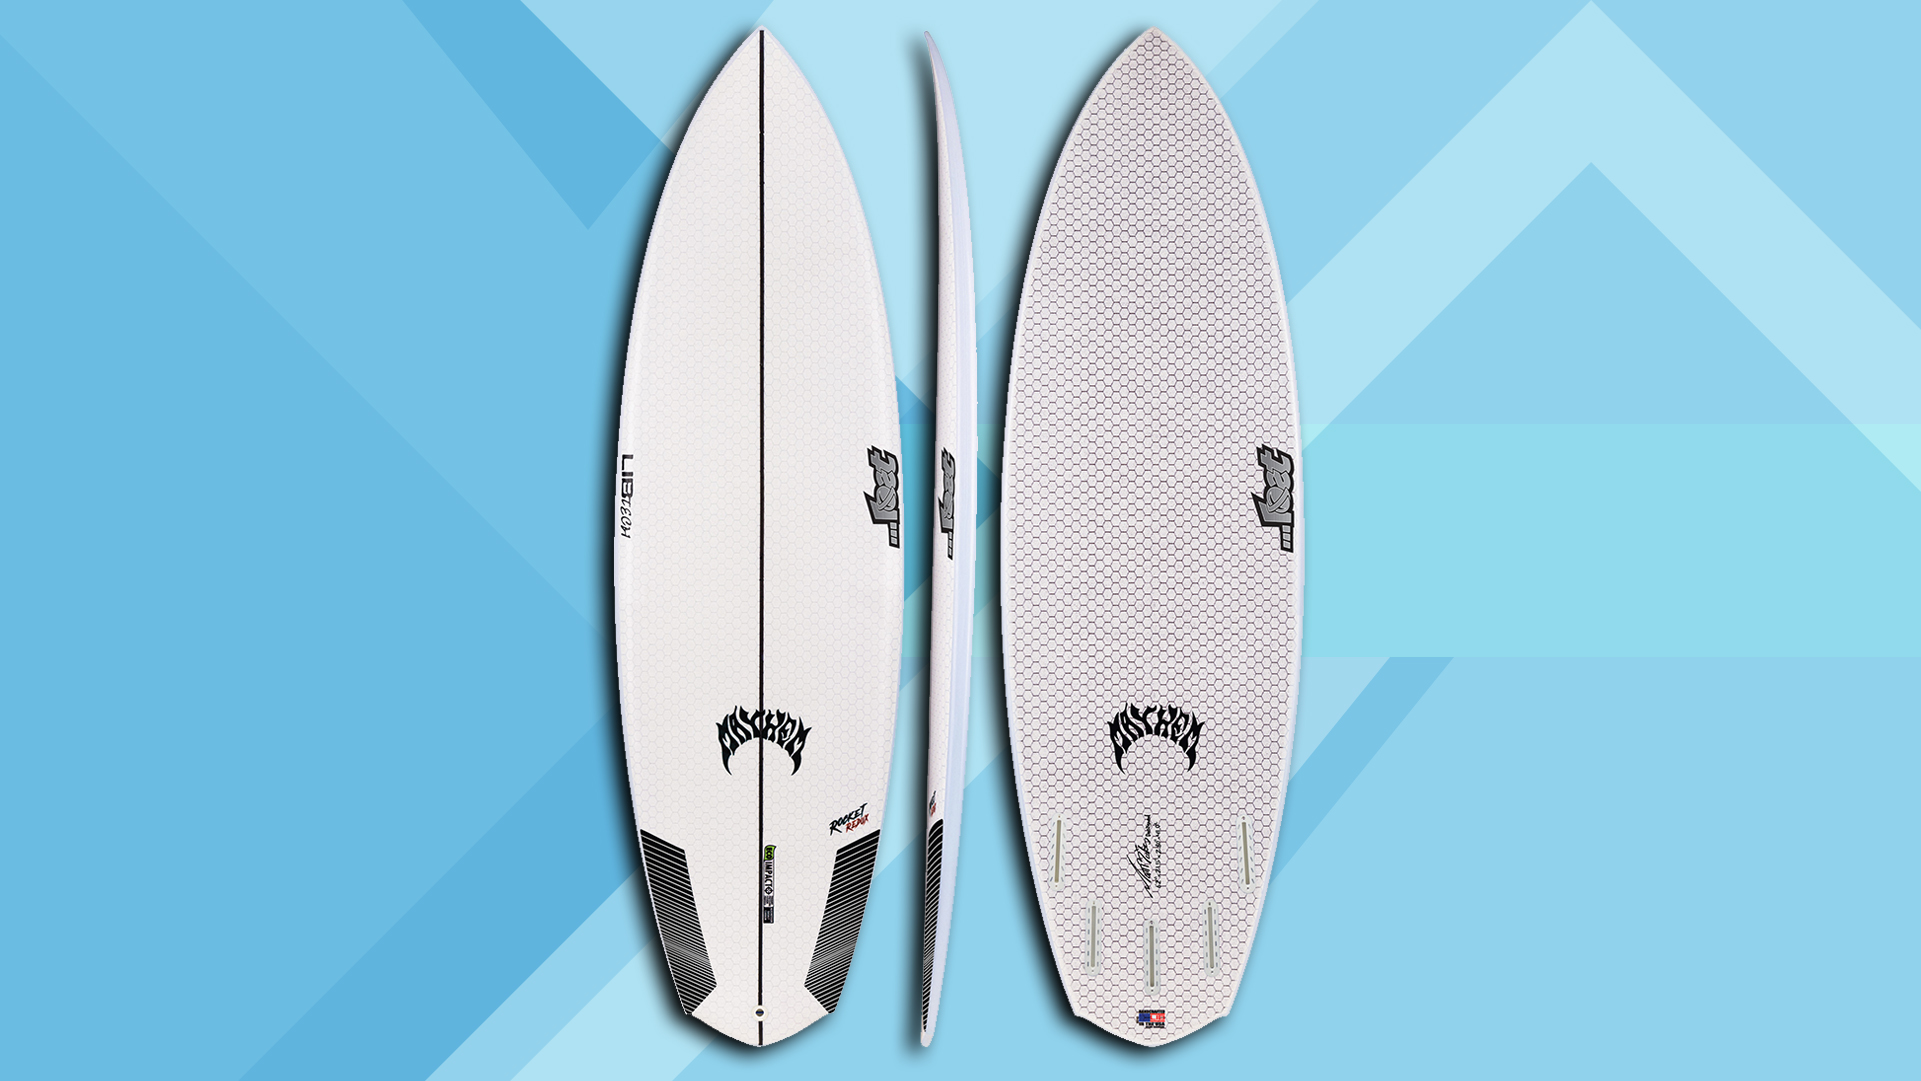 Lib Tech Surfboards – Rocket Redux 2021